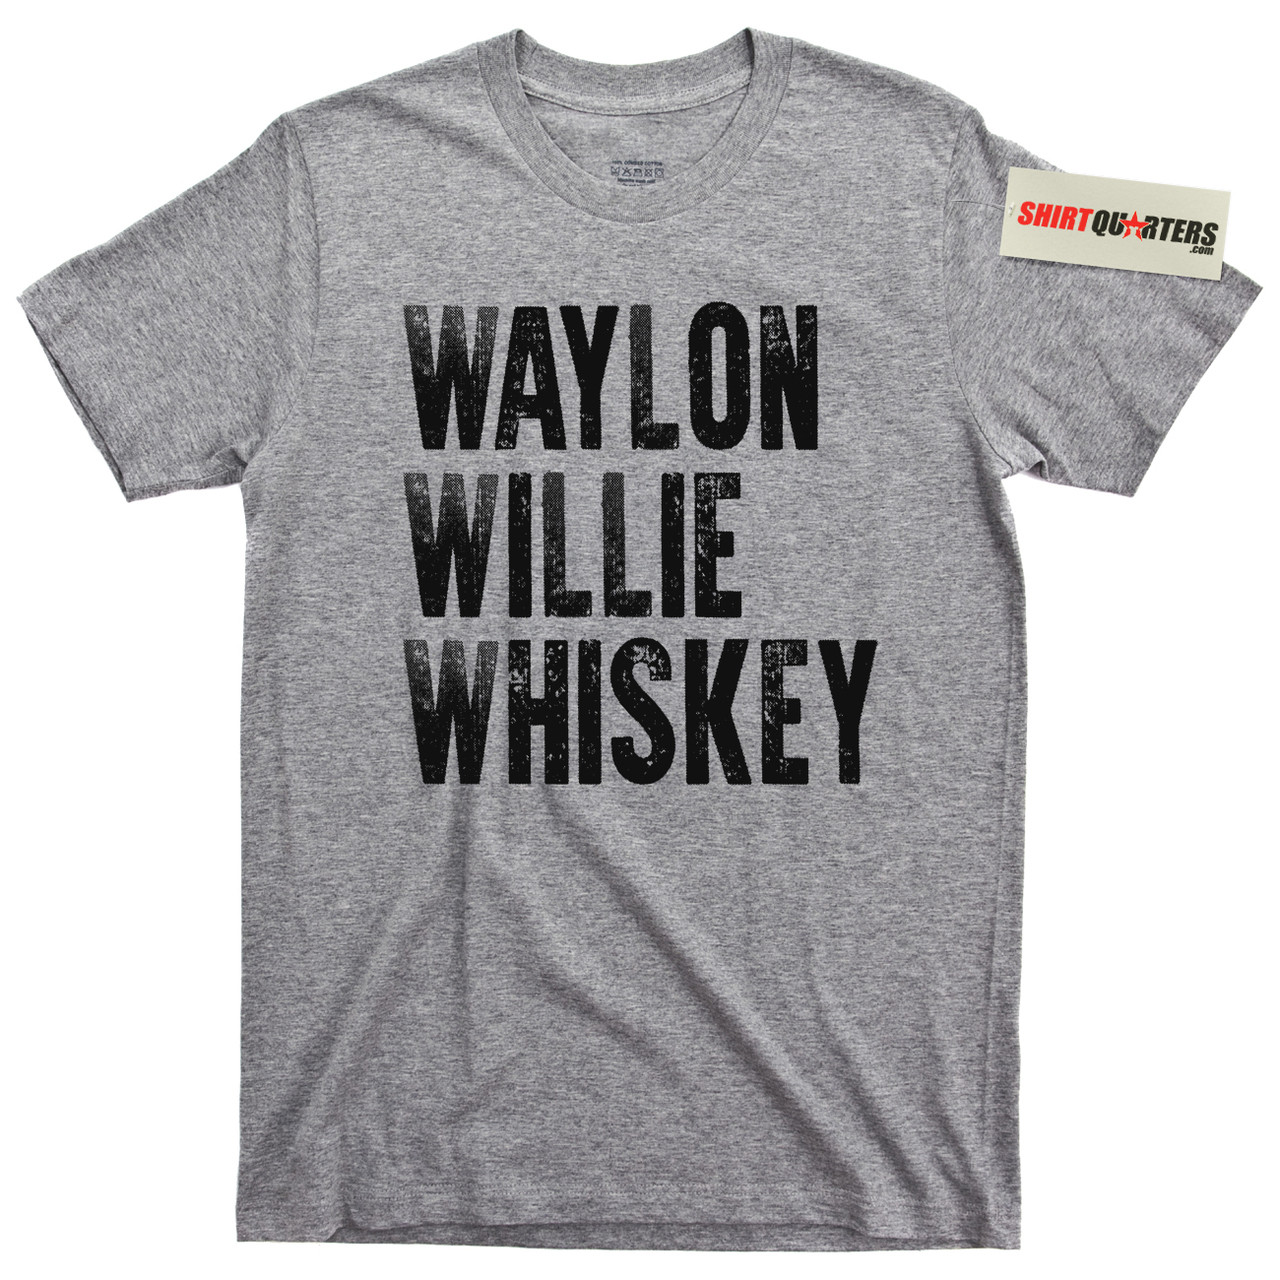 12c8b4fa Waylon Willie and Whiskey T Shirt - Shirtquarters